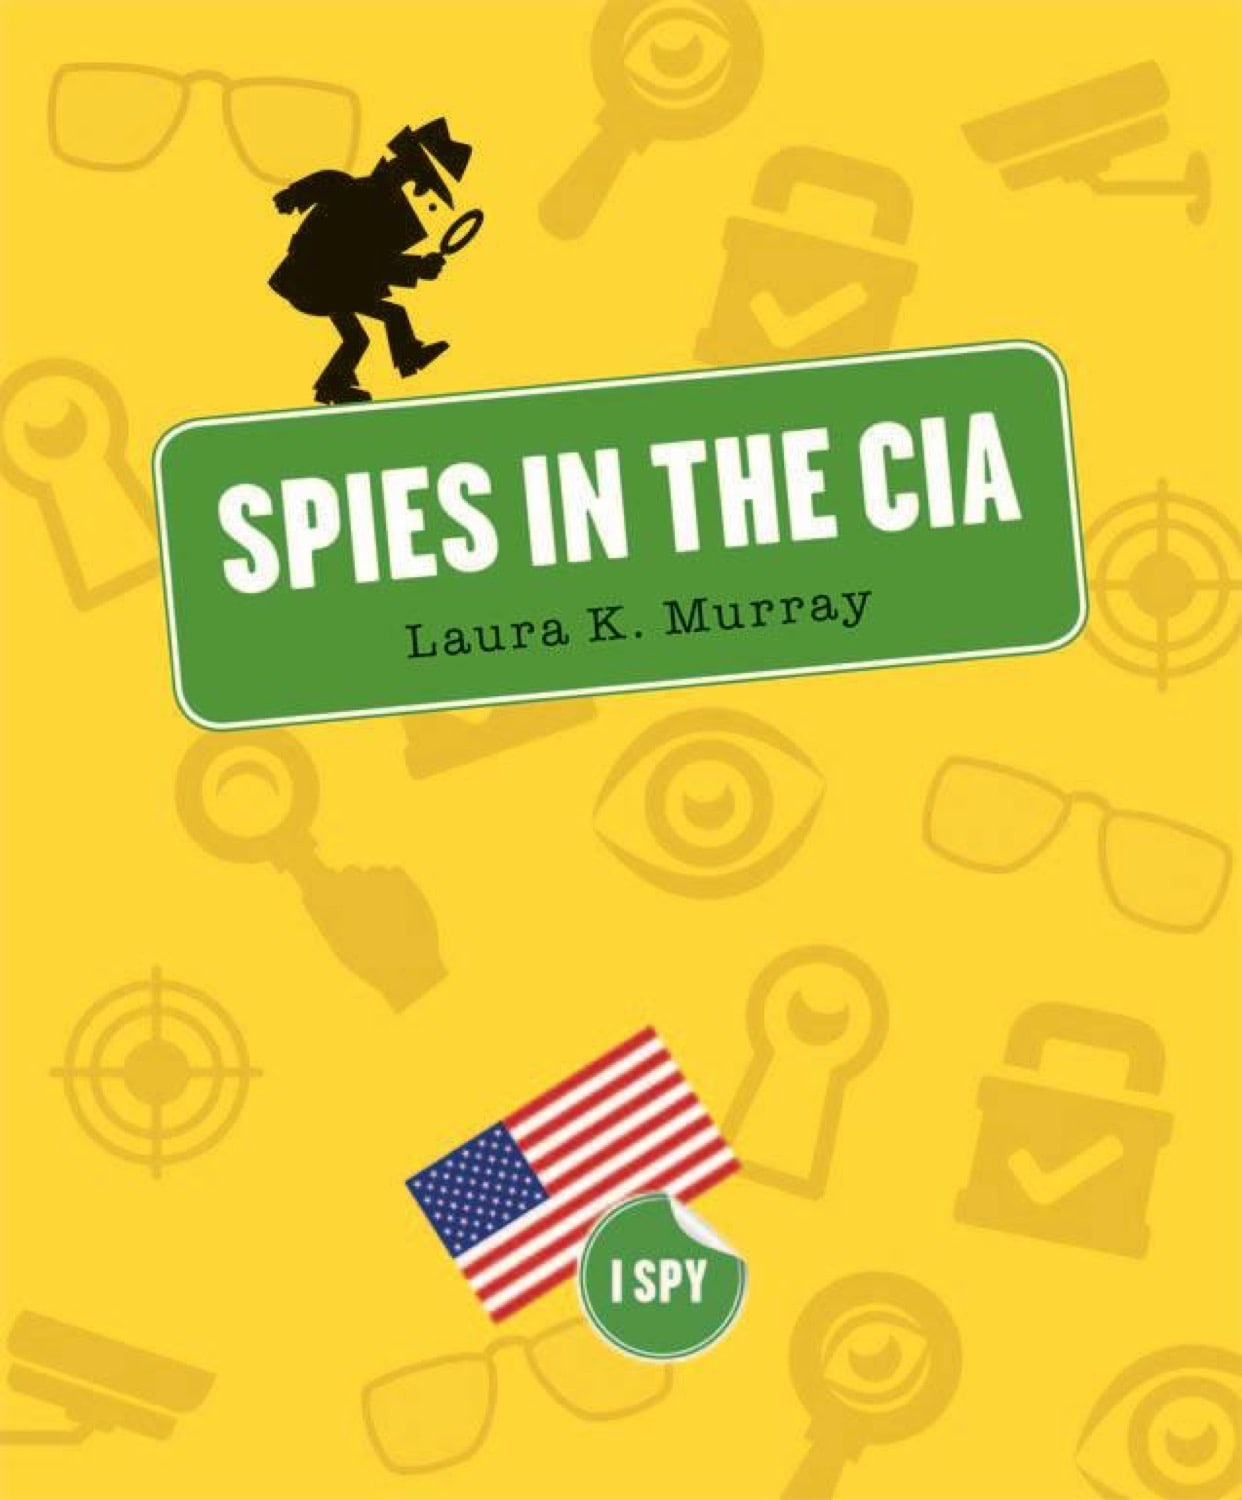 I Spy: Spies in the CIA